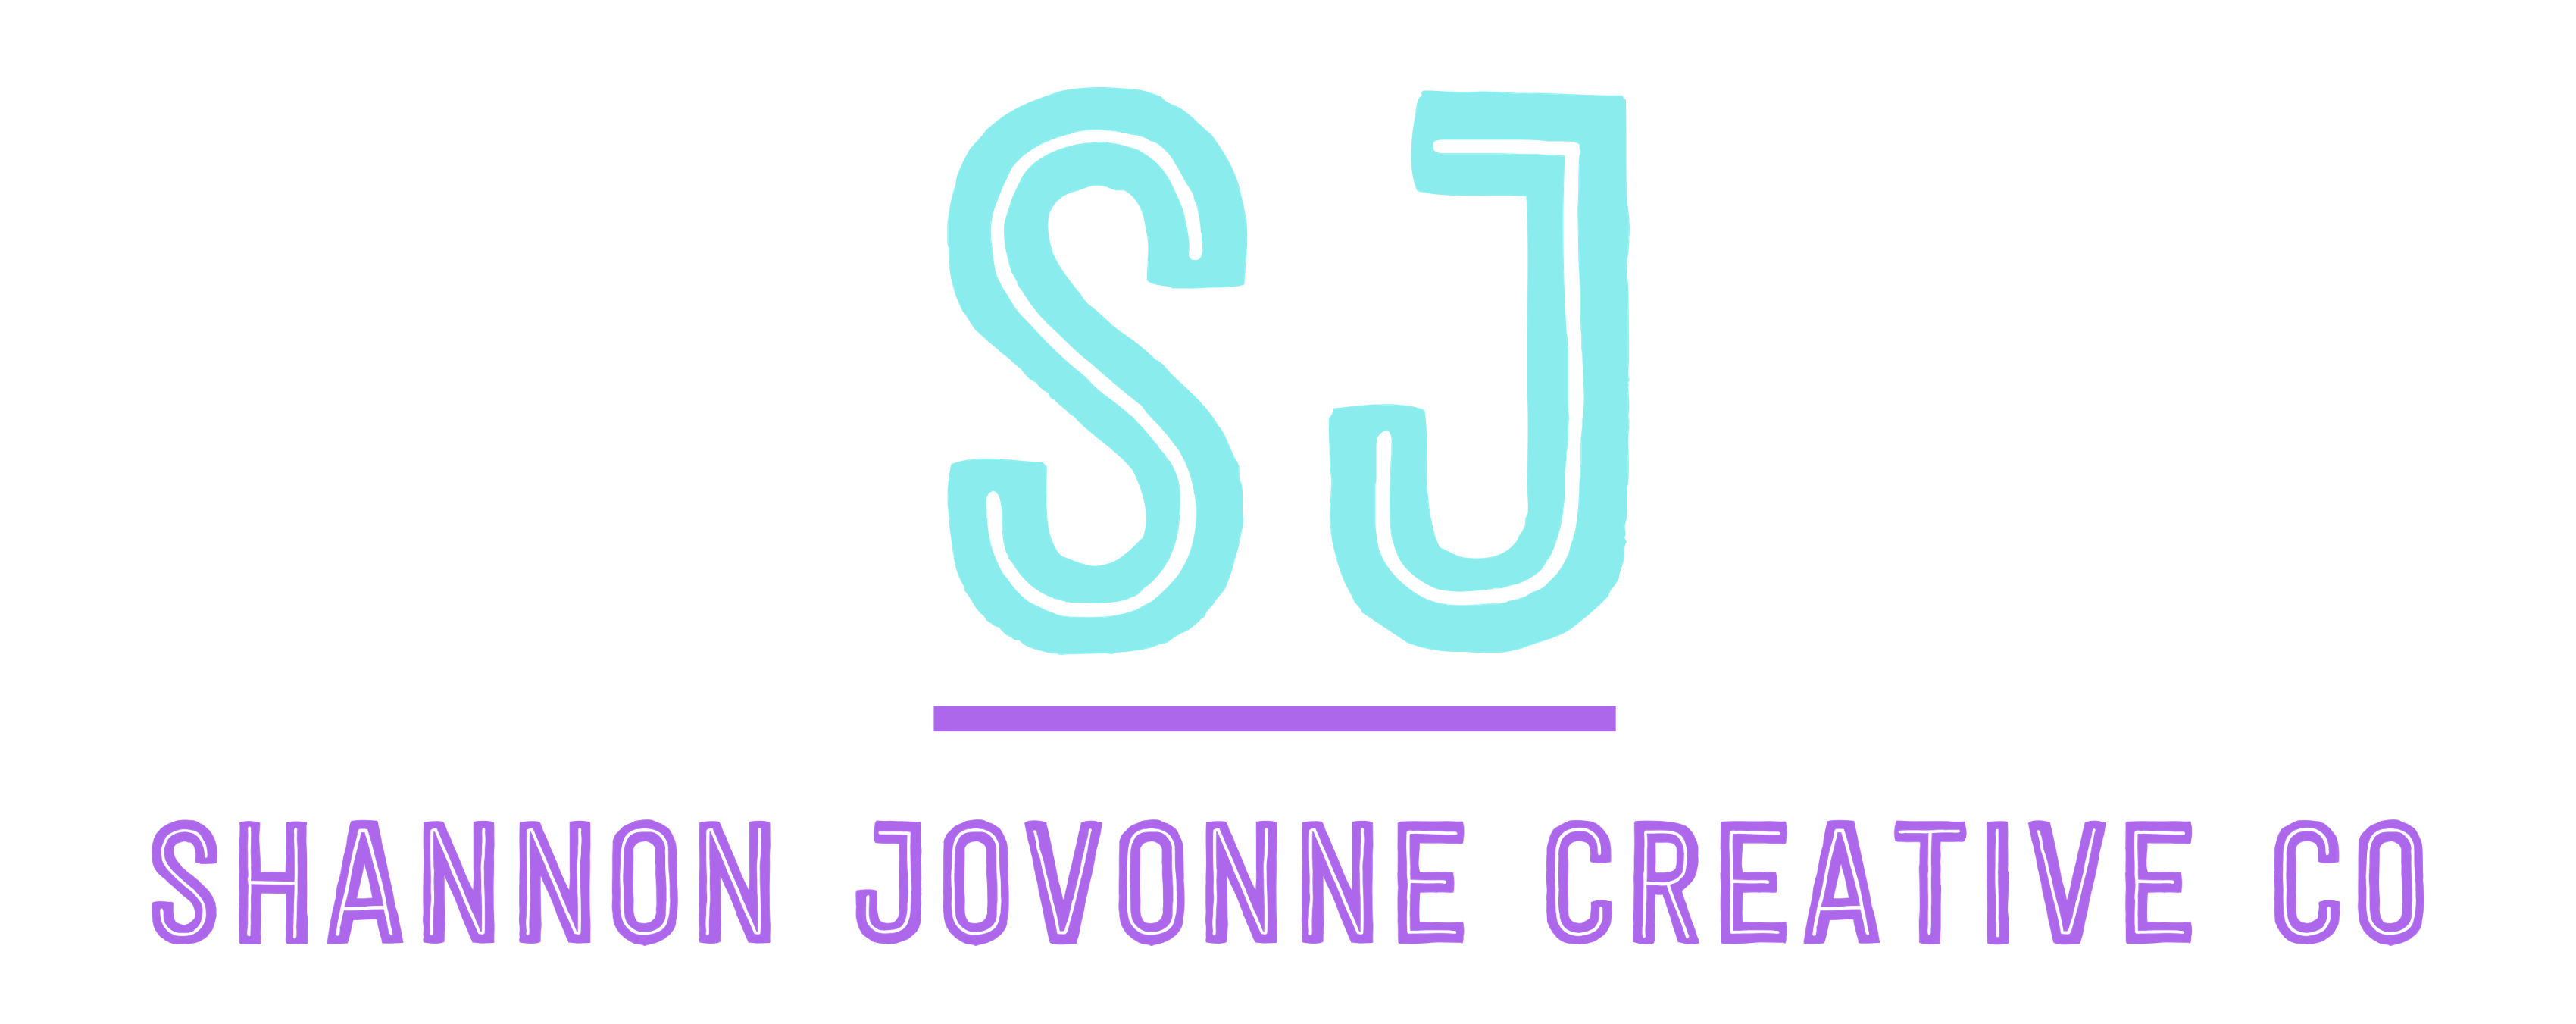 Shannon Jovonne Creative Co